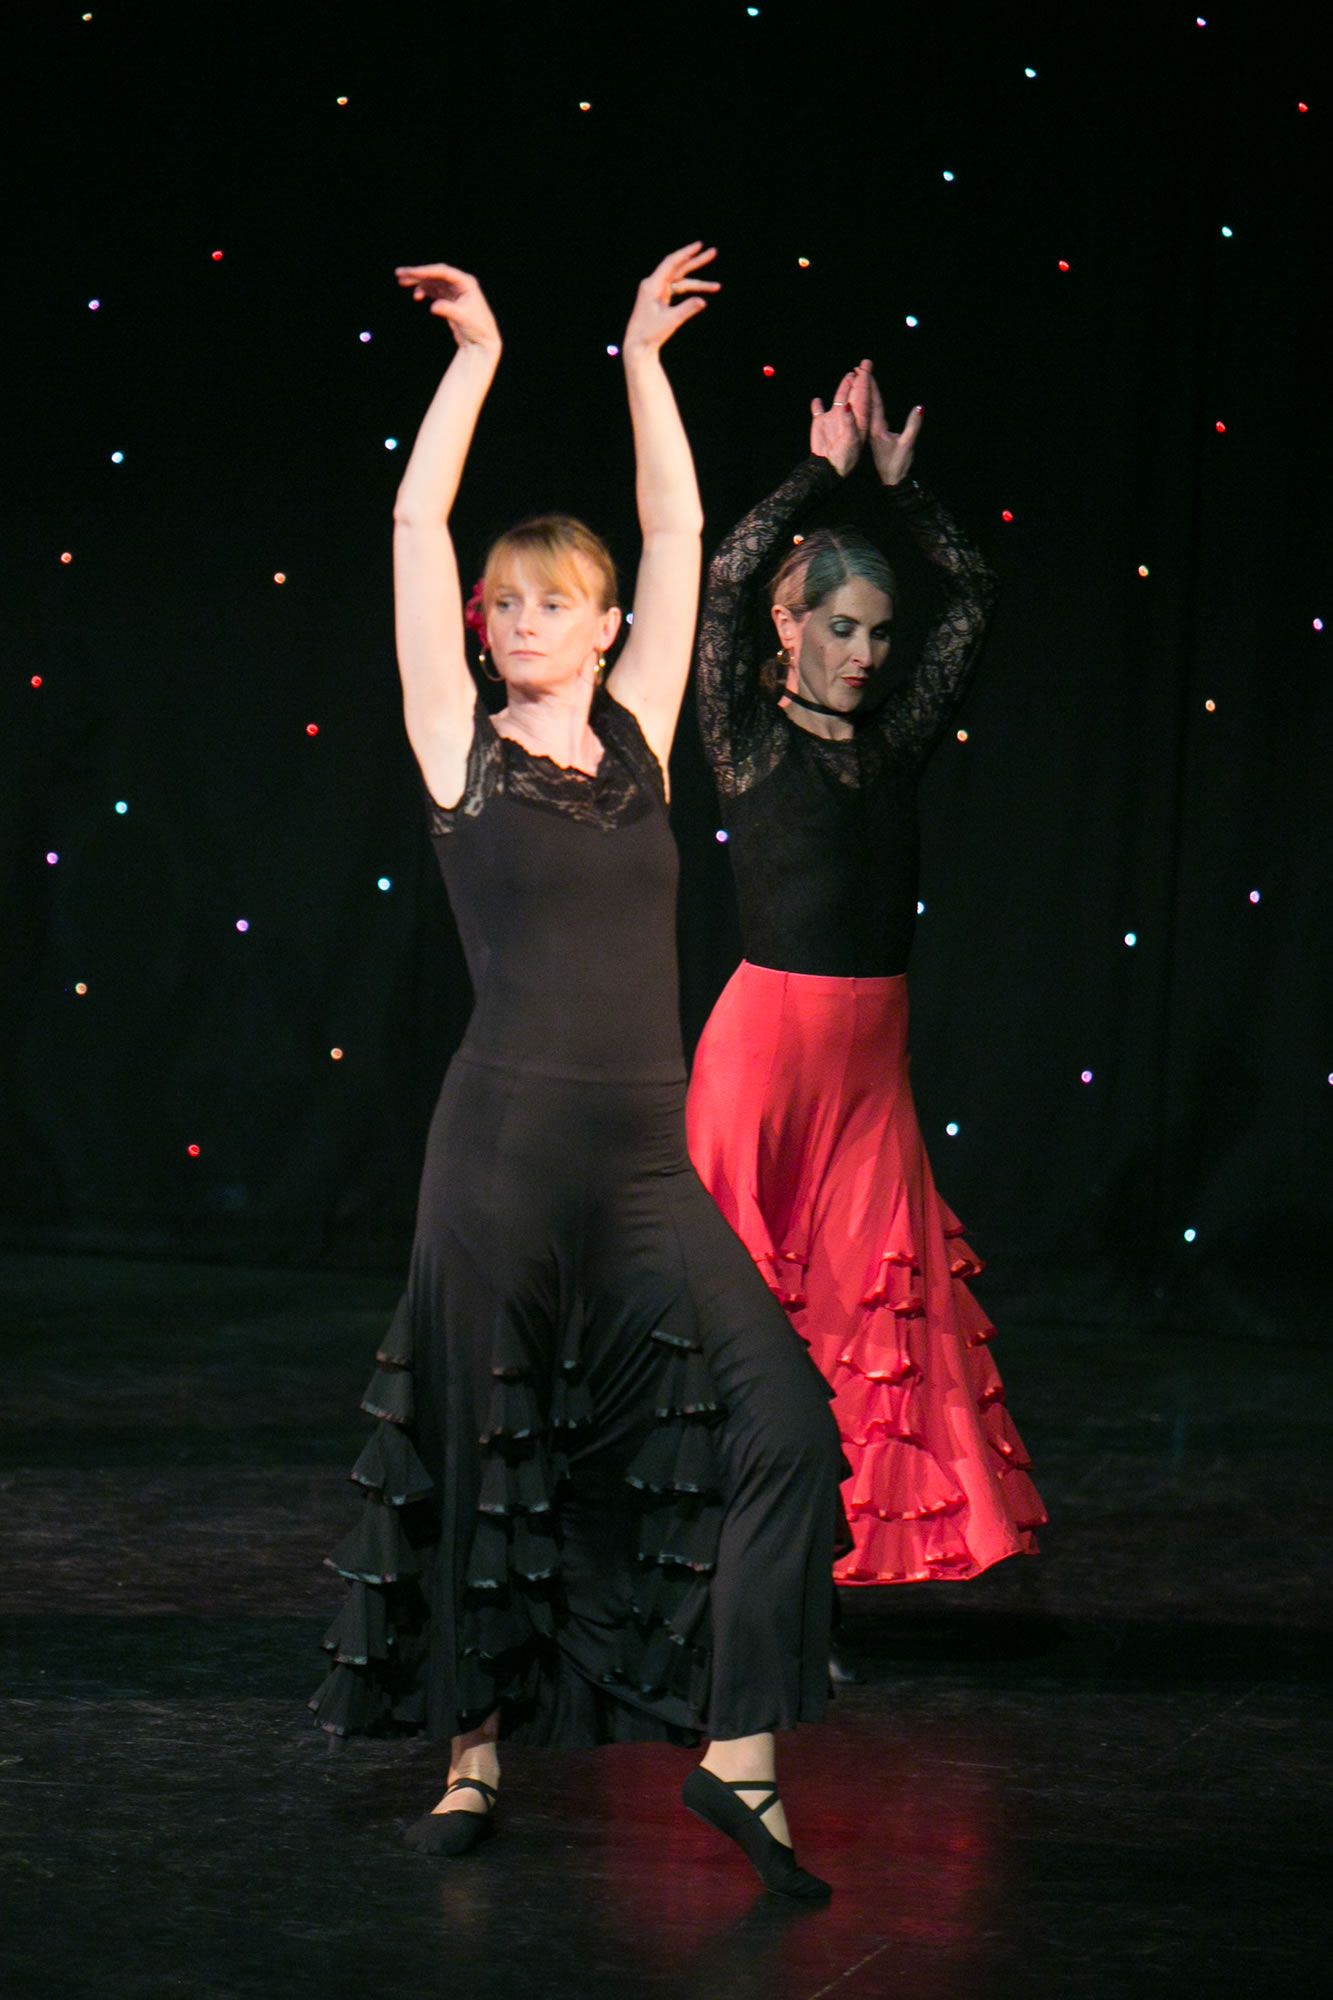 Hitchin_School_of_Dance_Show_2019-SM1_1970.jpg